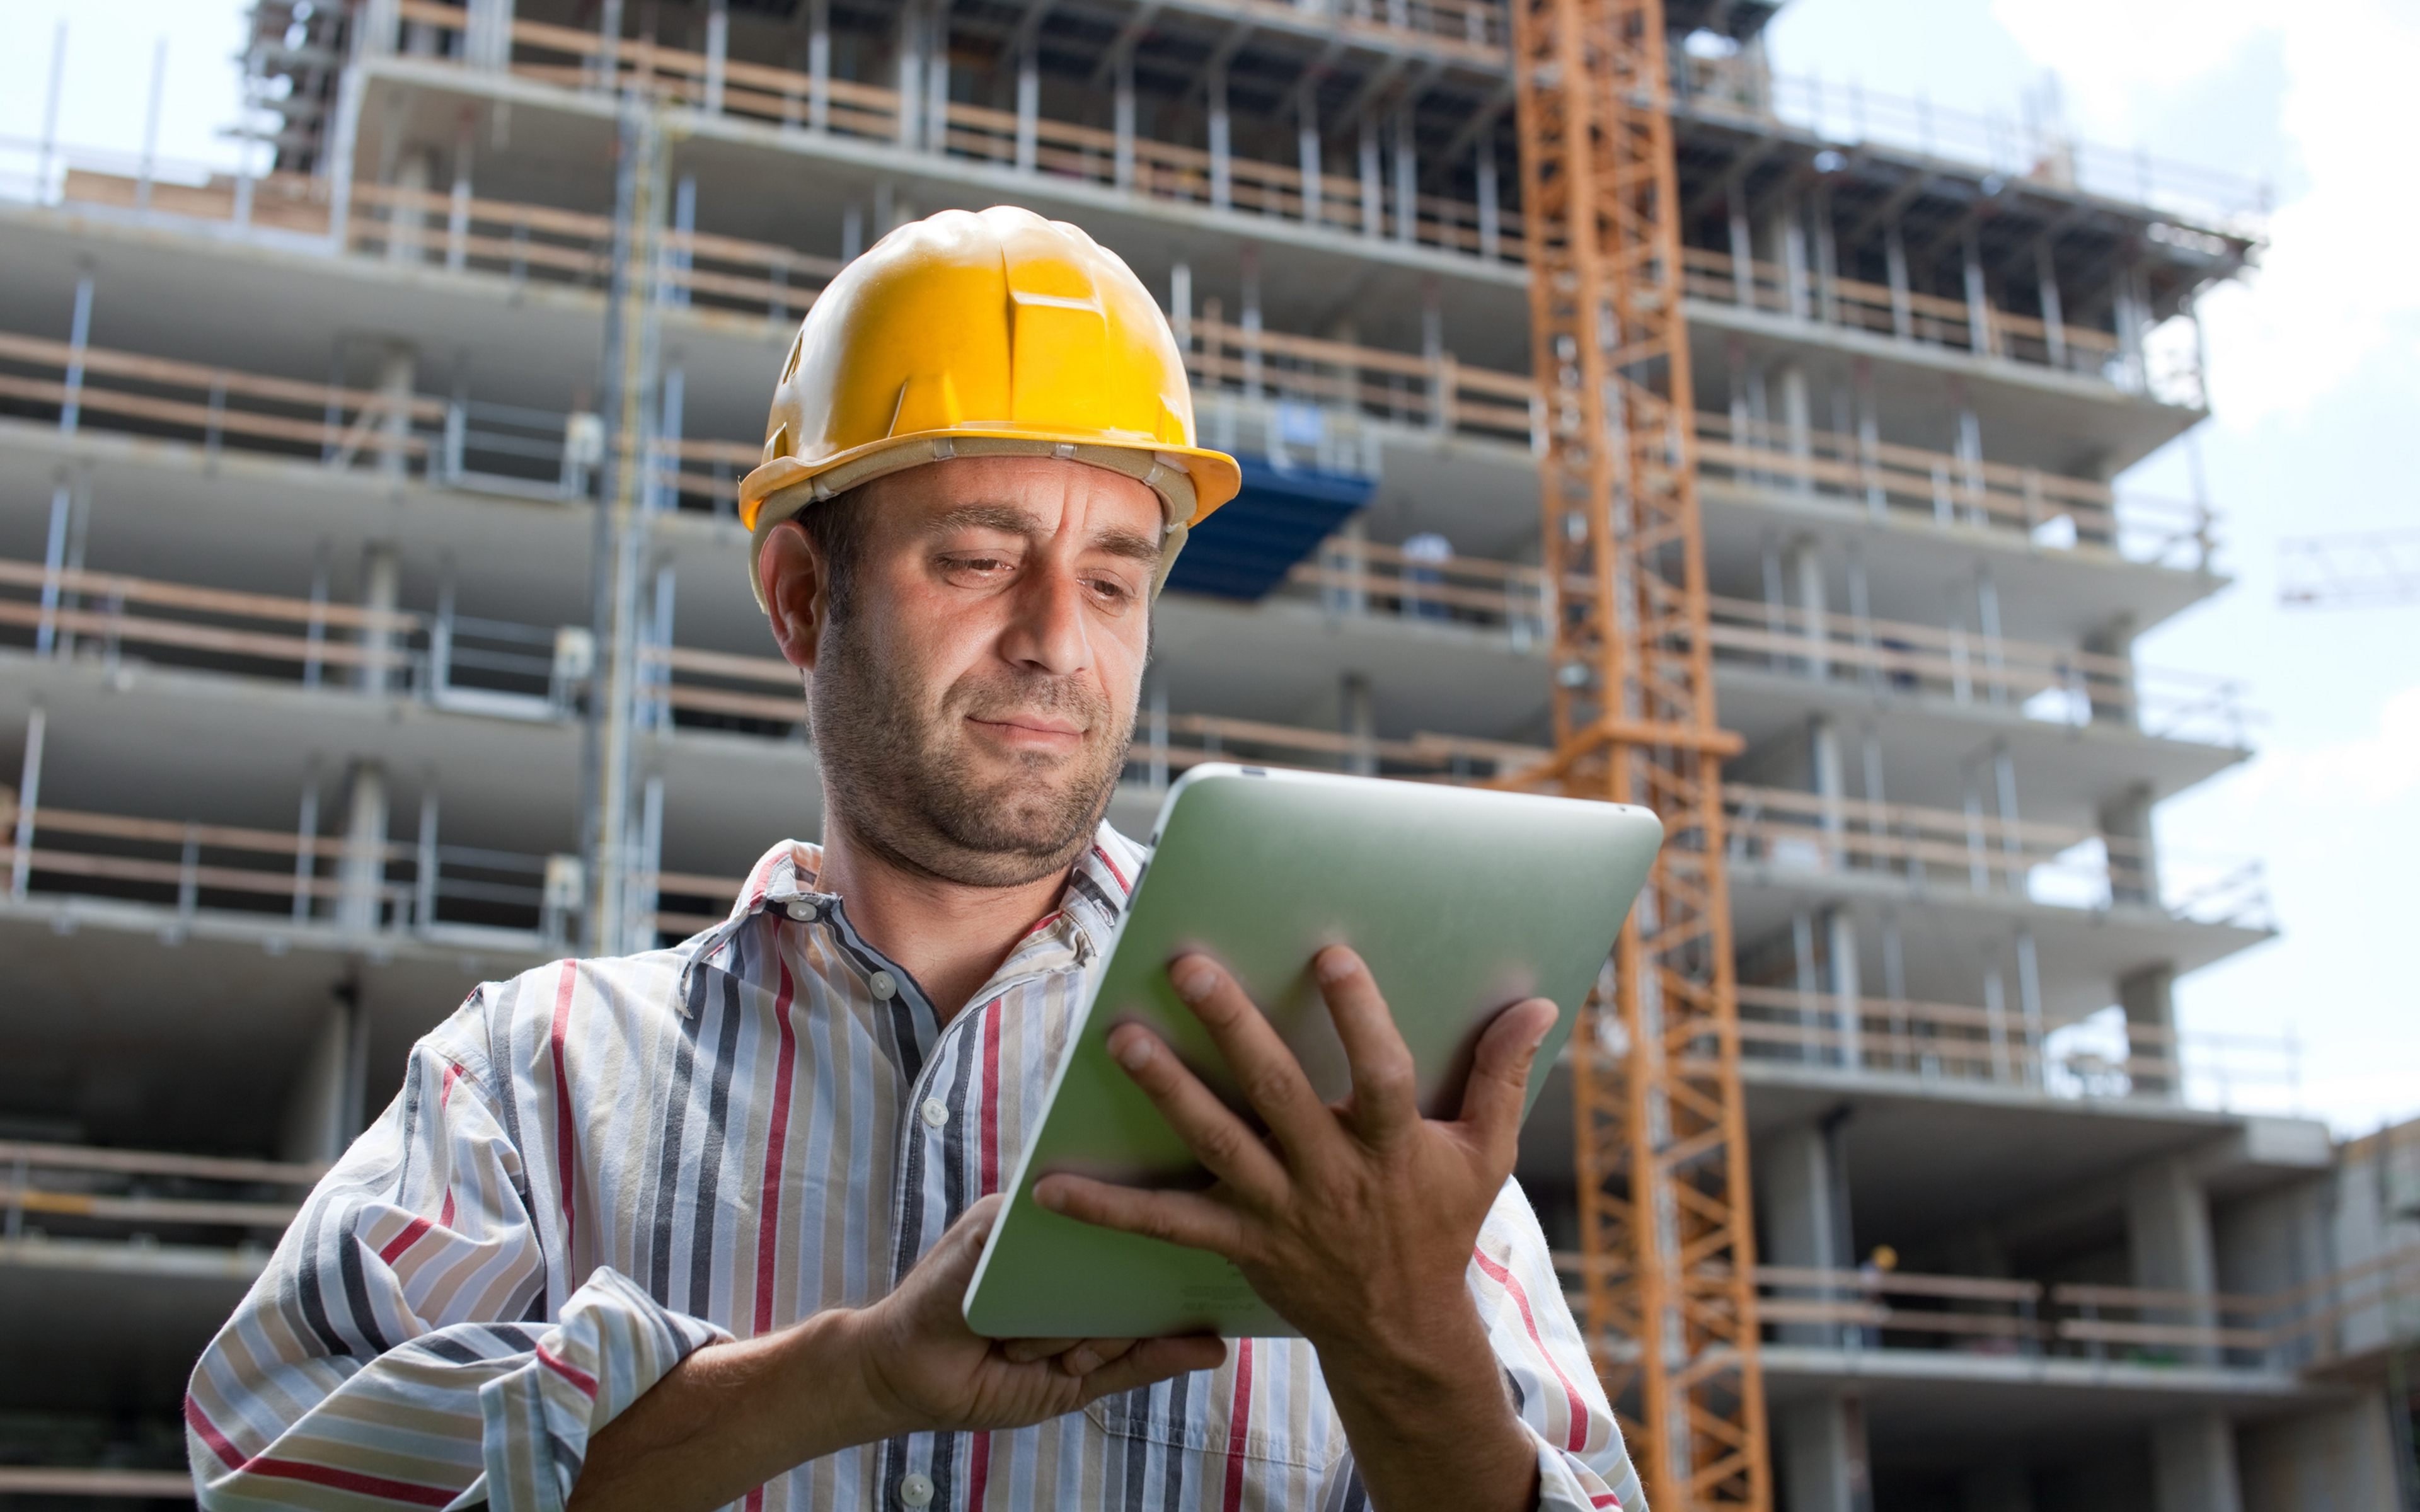 builder_building_helmet_tablet_79895_3840x2400